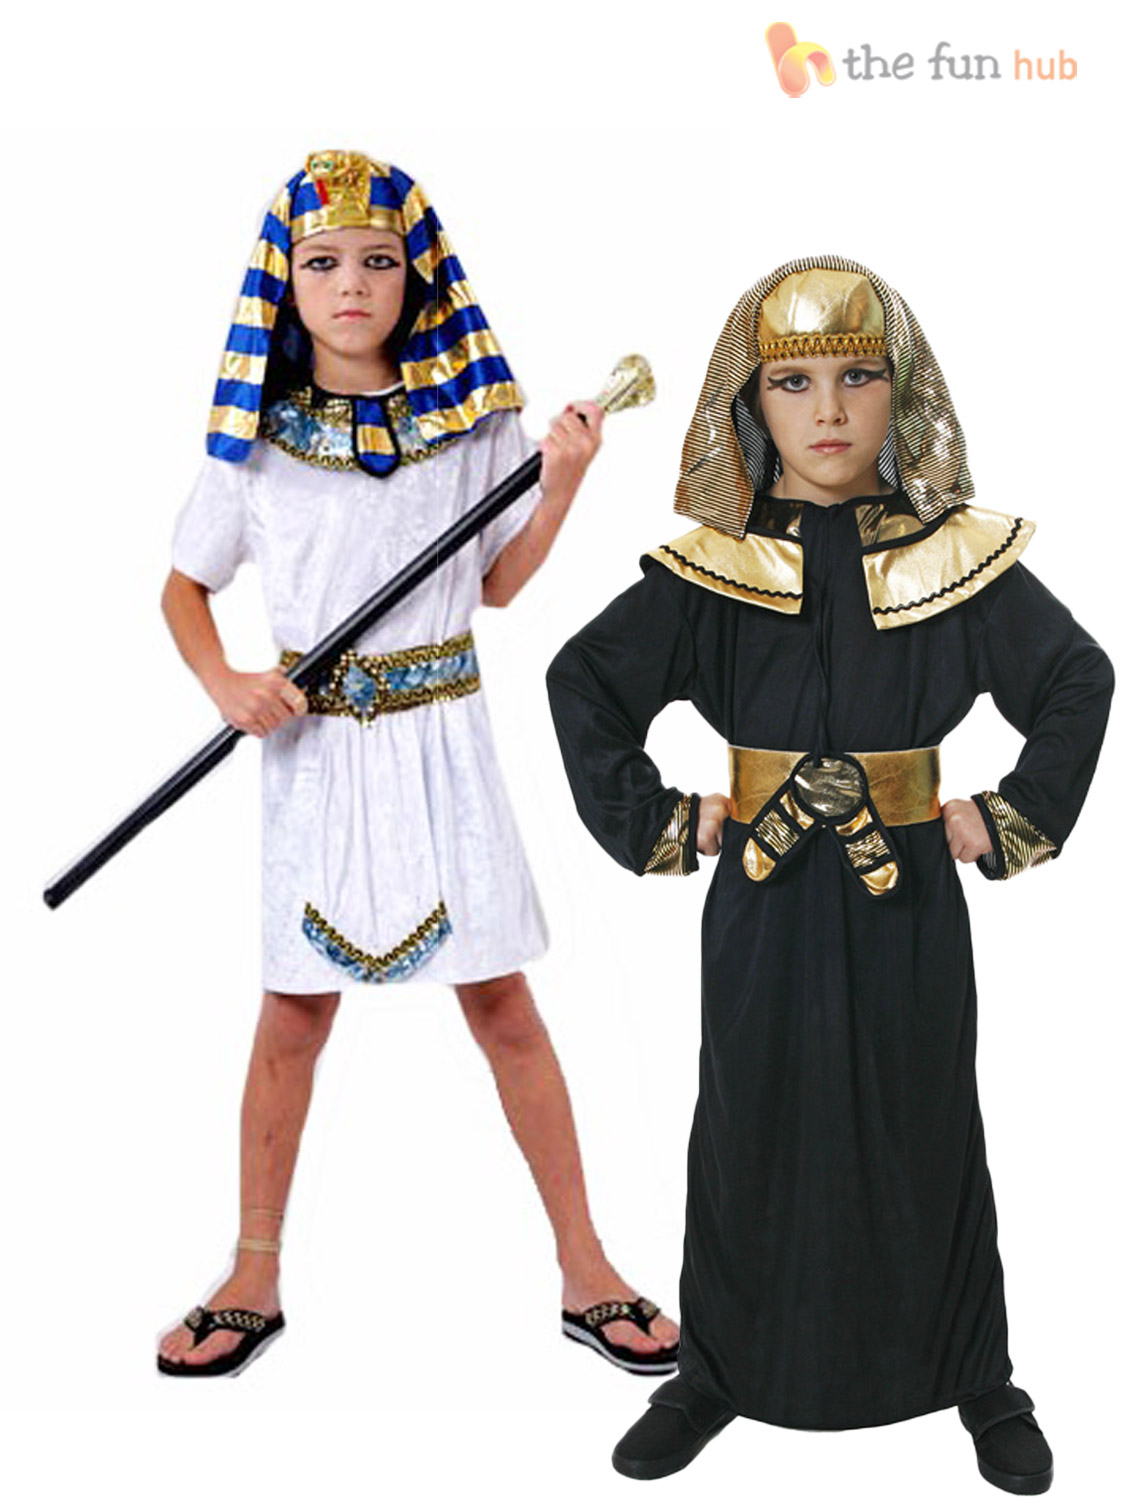 Boys-Egyptian-Pharaoh-King-Fancy-Dress-Book-Week-Costume-Historical-Kids-Outfit